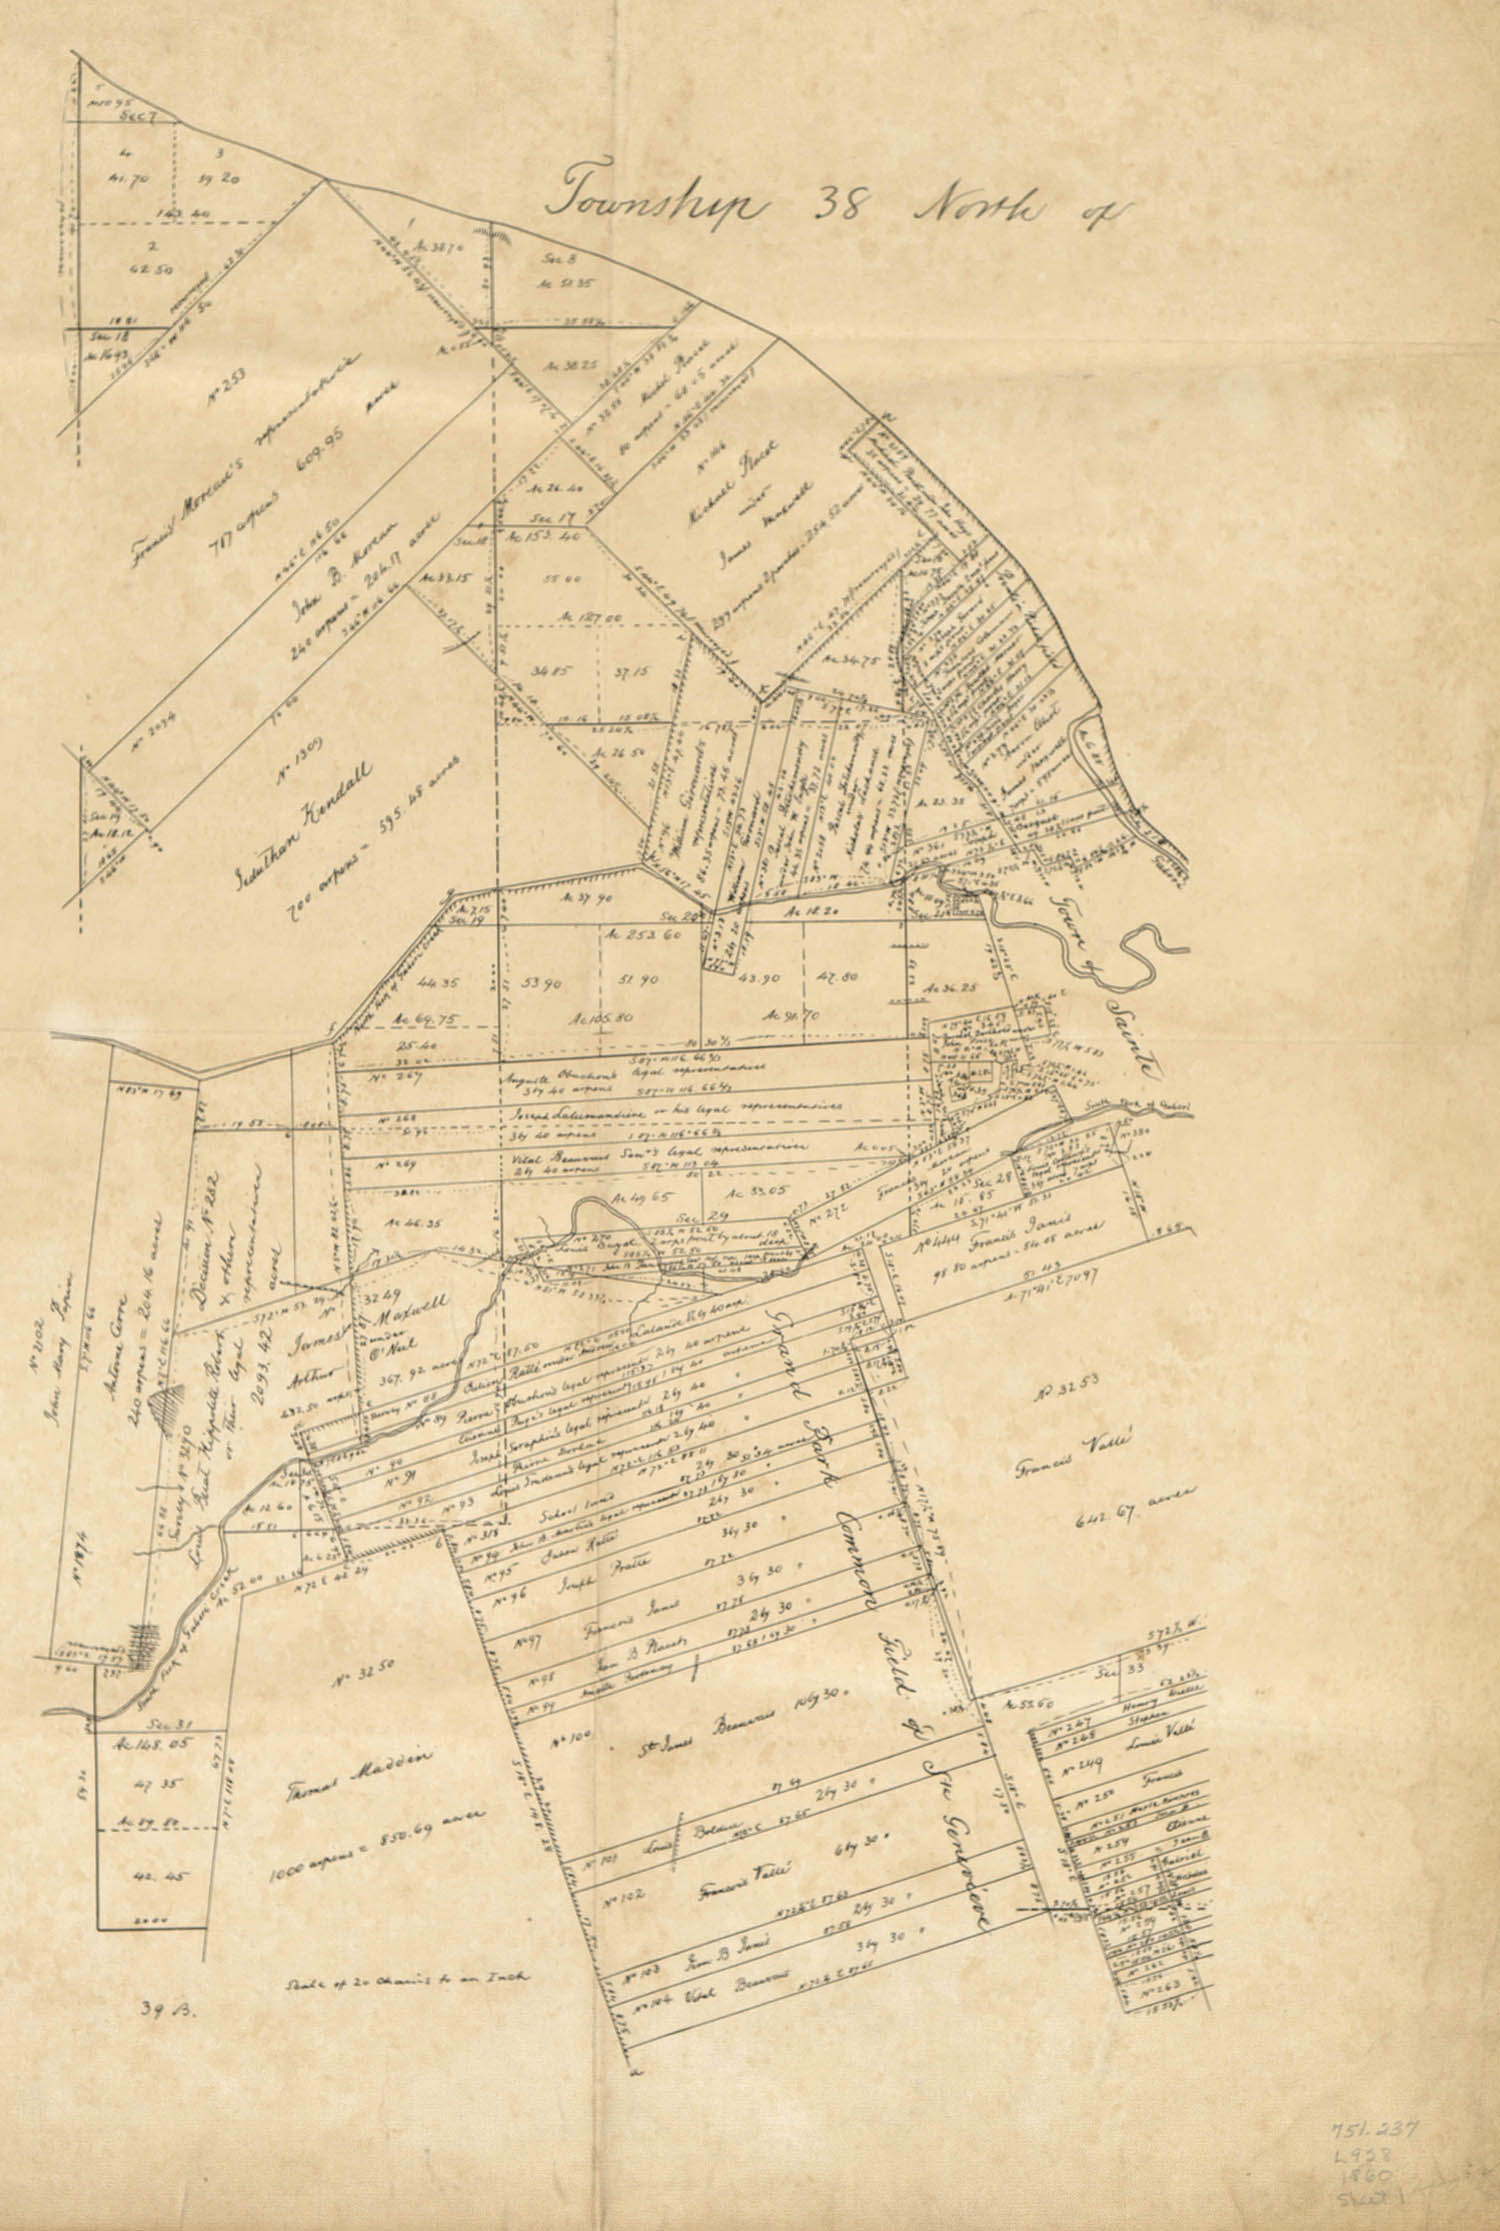 map of Ste. Genevieve